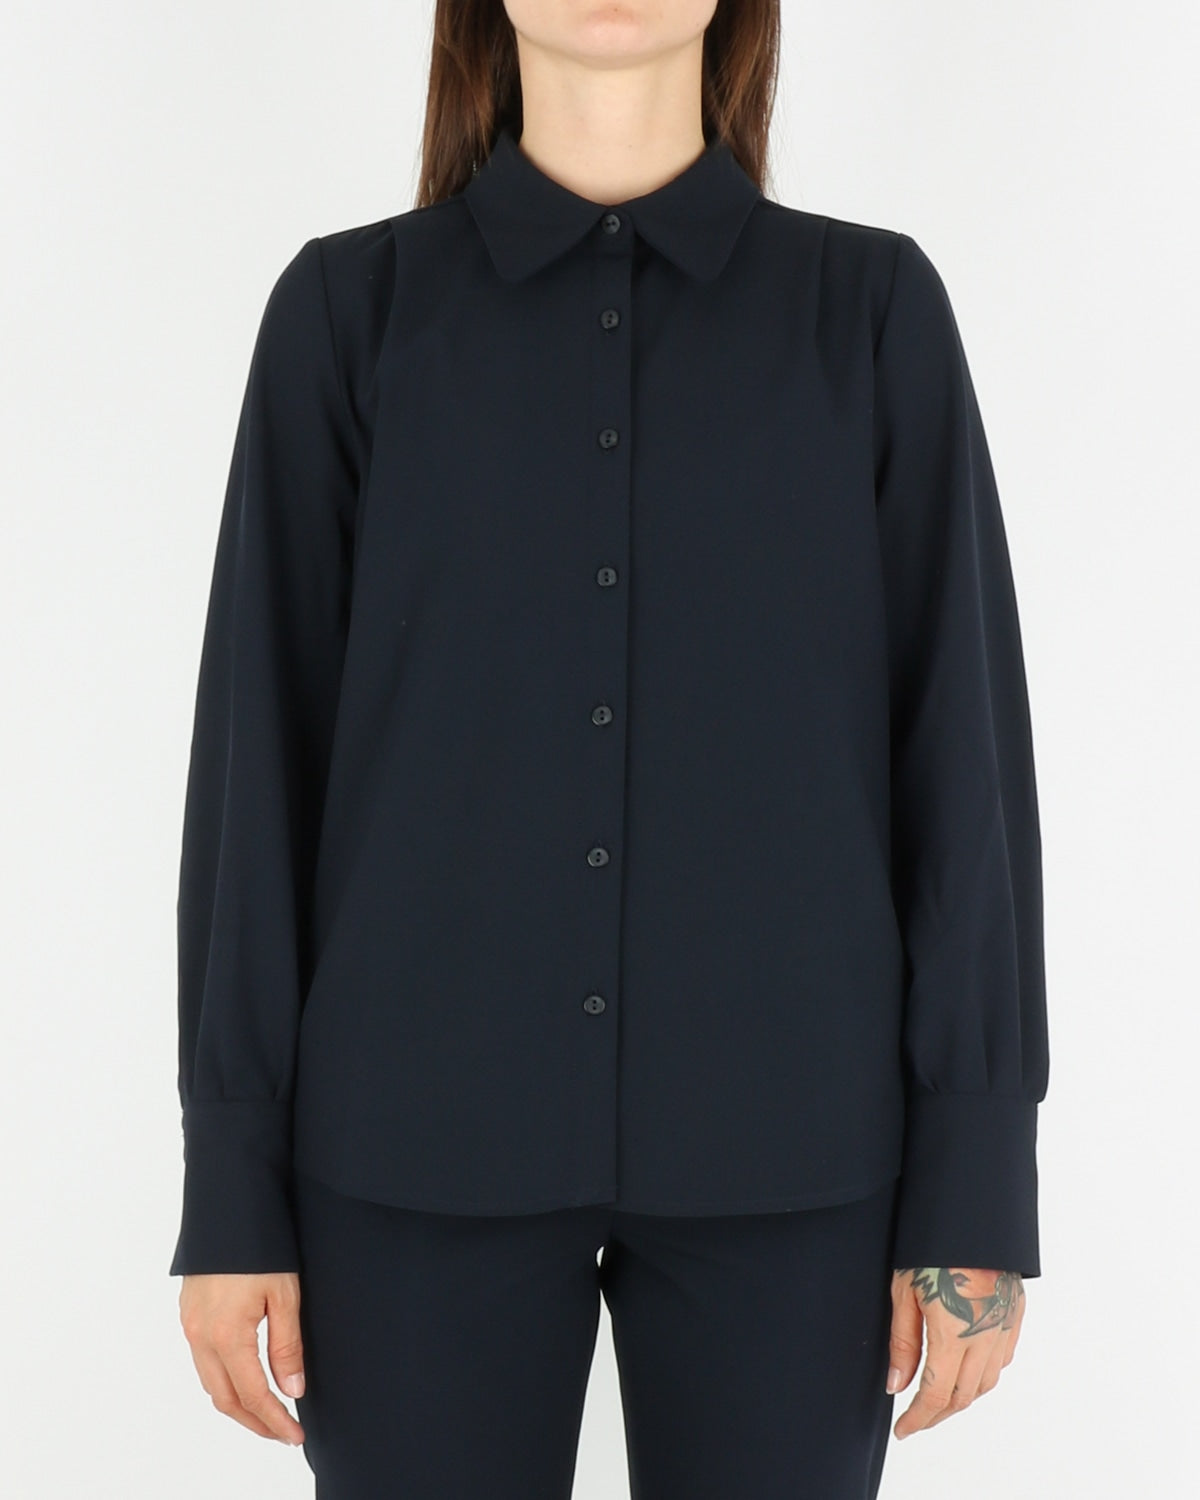 anecdote_becca blouse_navy_view_1_4